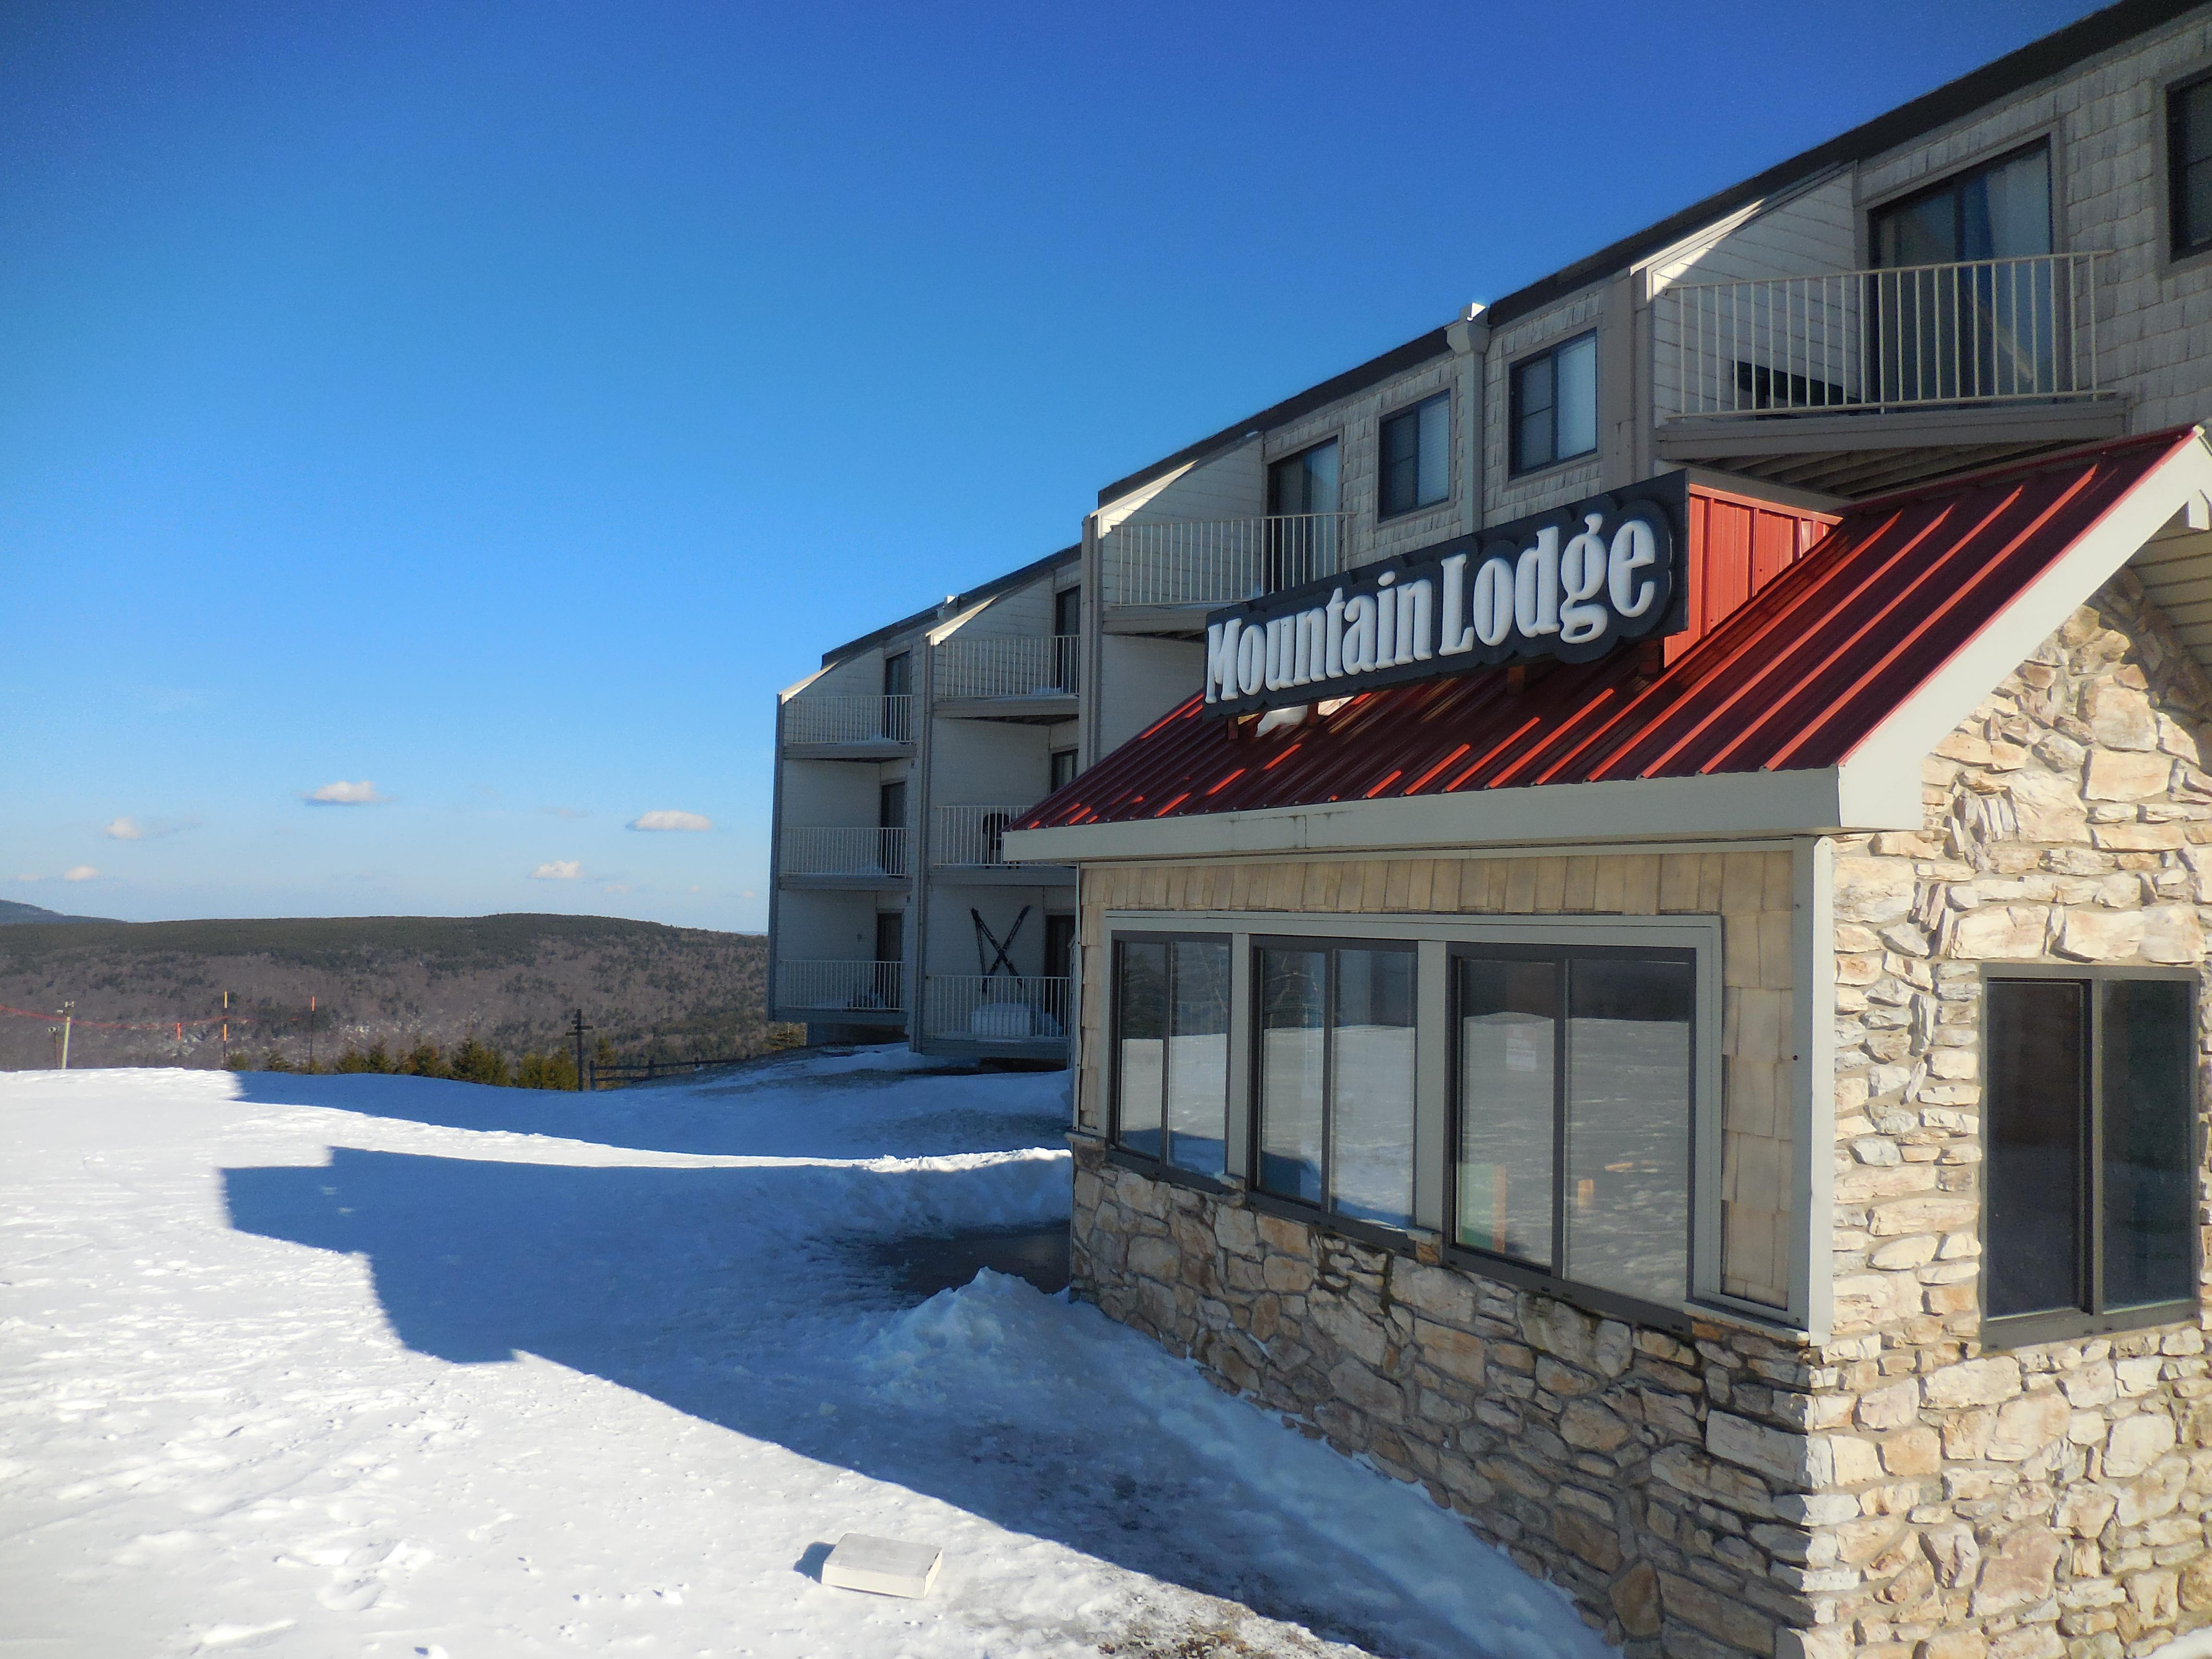 Our back door leads directly to the slopes and Snowshoe Village!